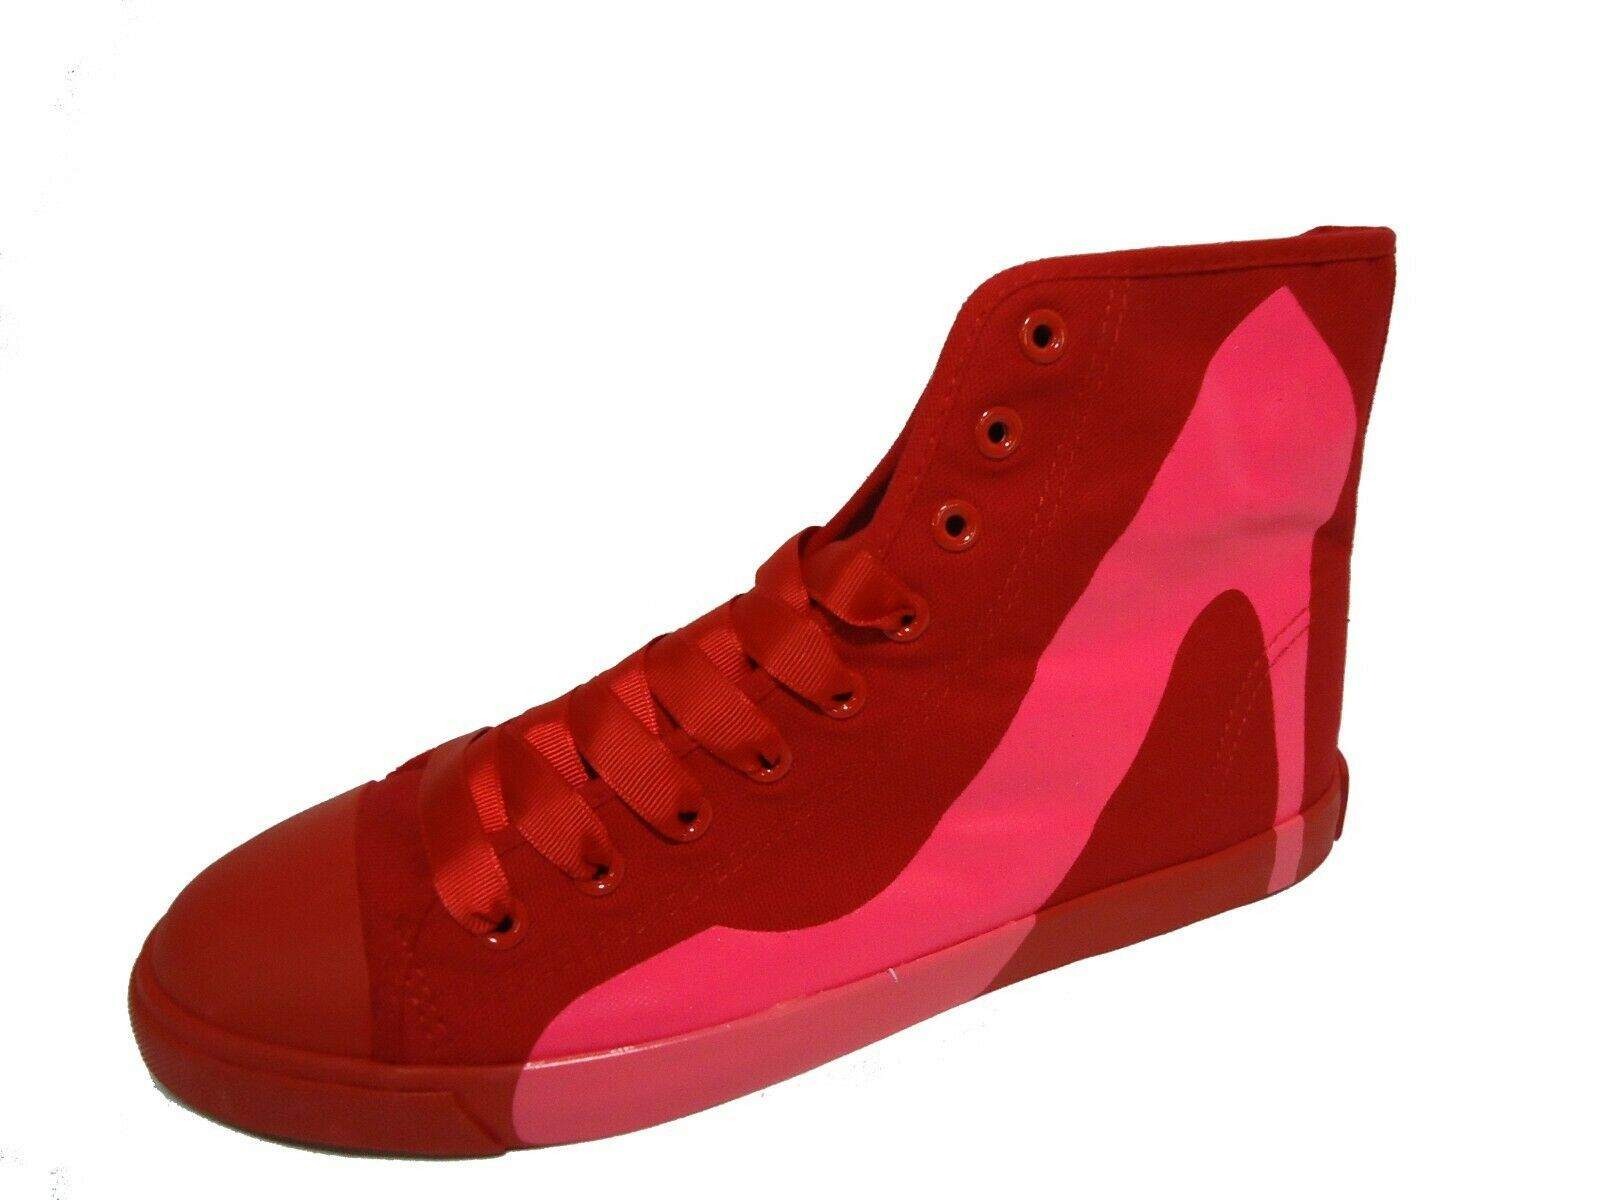 Primary image for Women Casual Sneakers Bright Lights Red Canvas Fuchsia - Sizes 5 to 10 in stock